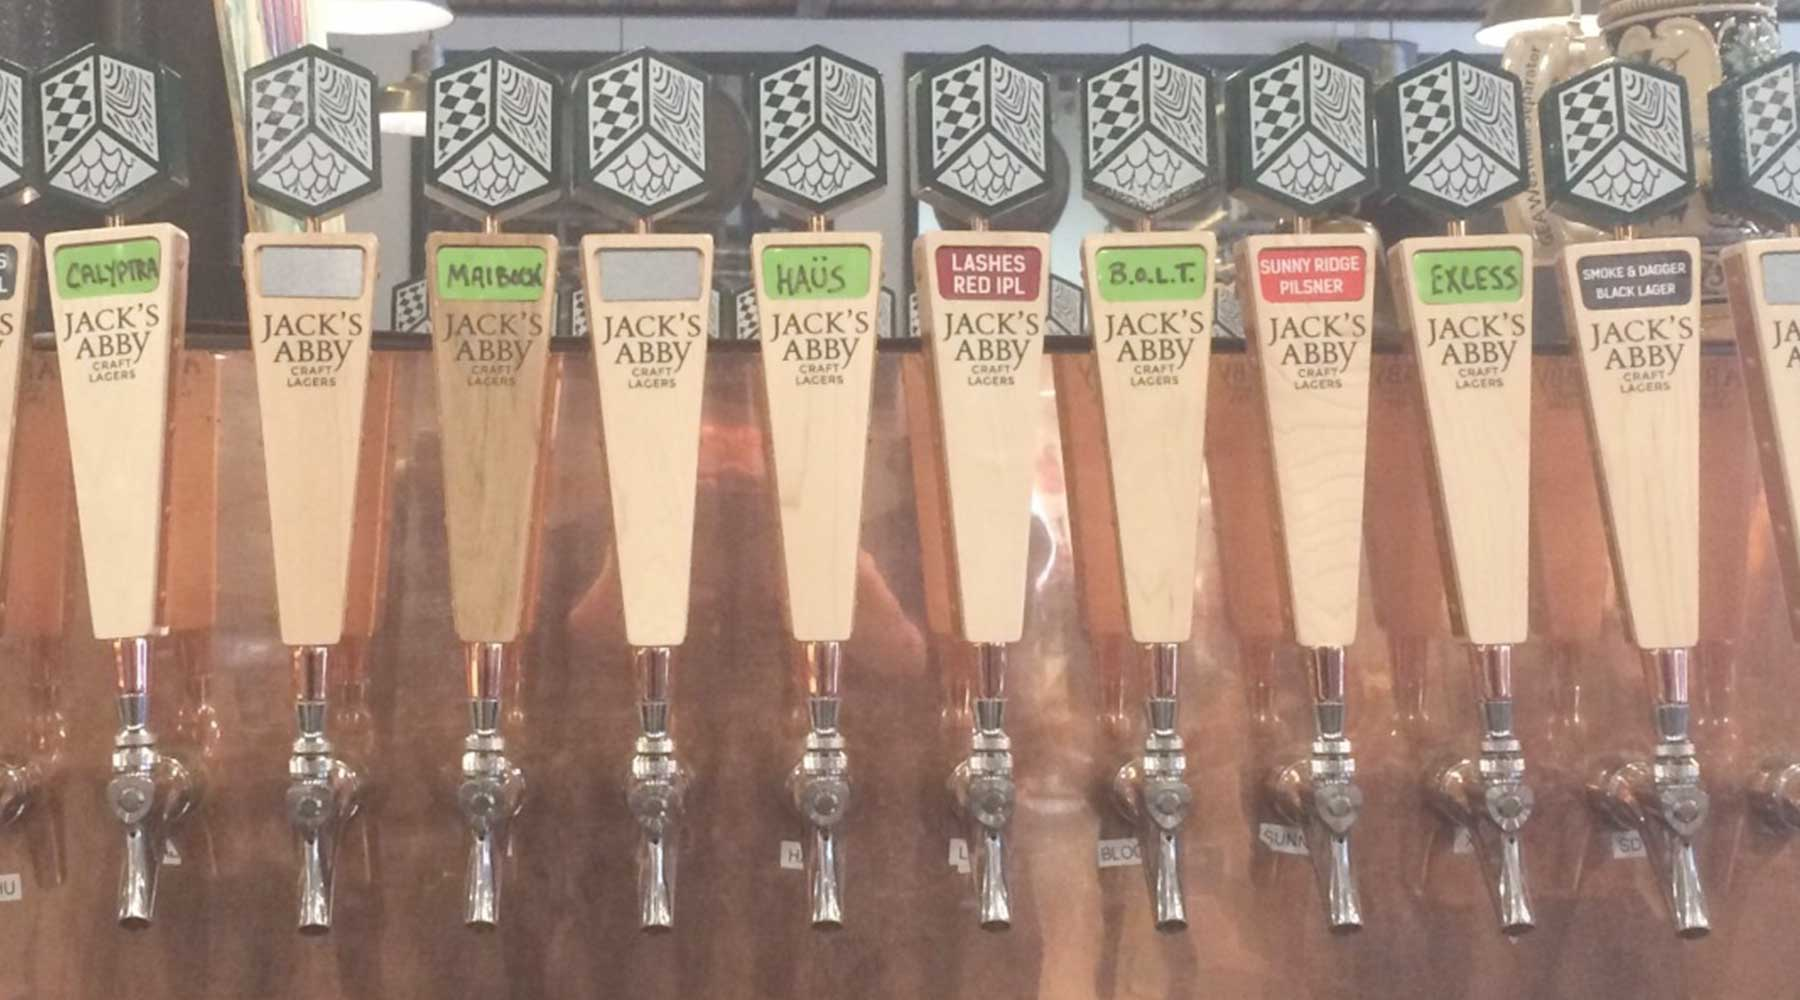 Jack's Abby Craft Lagers | Just Wine